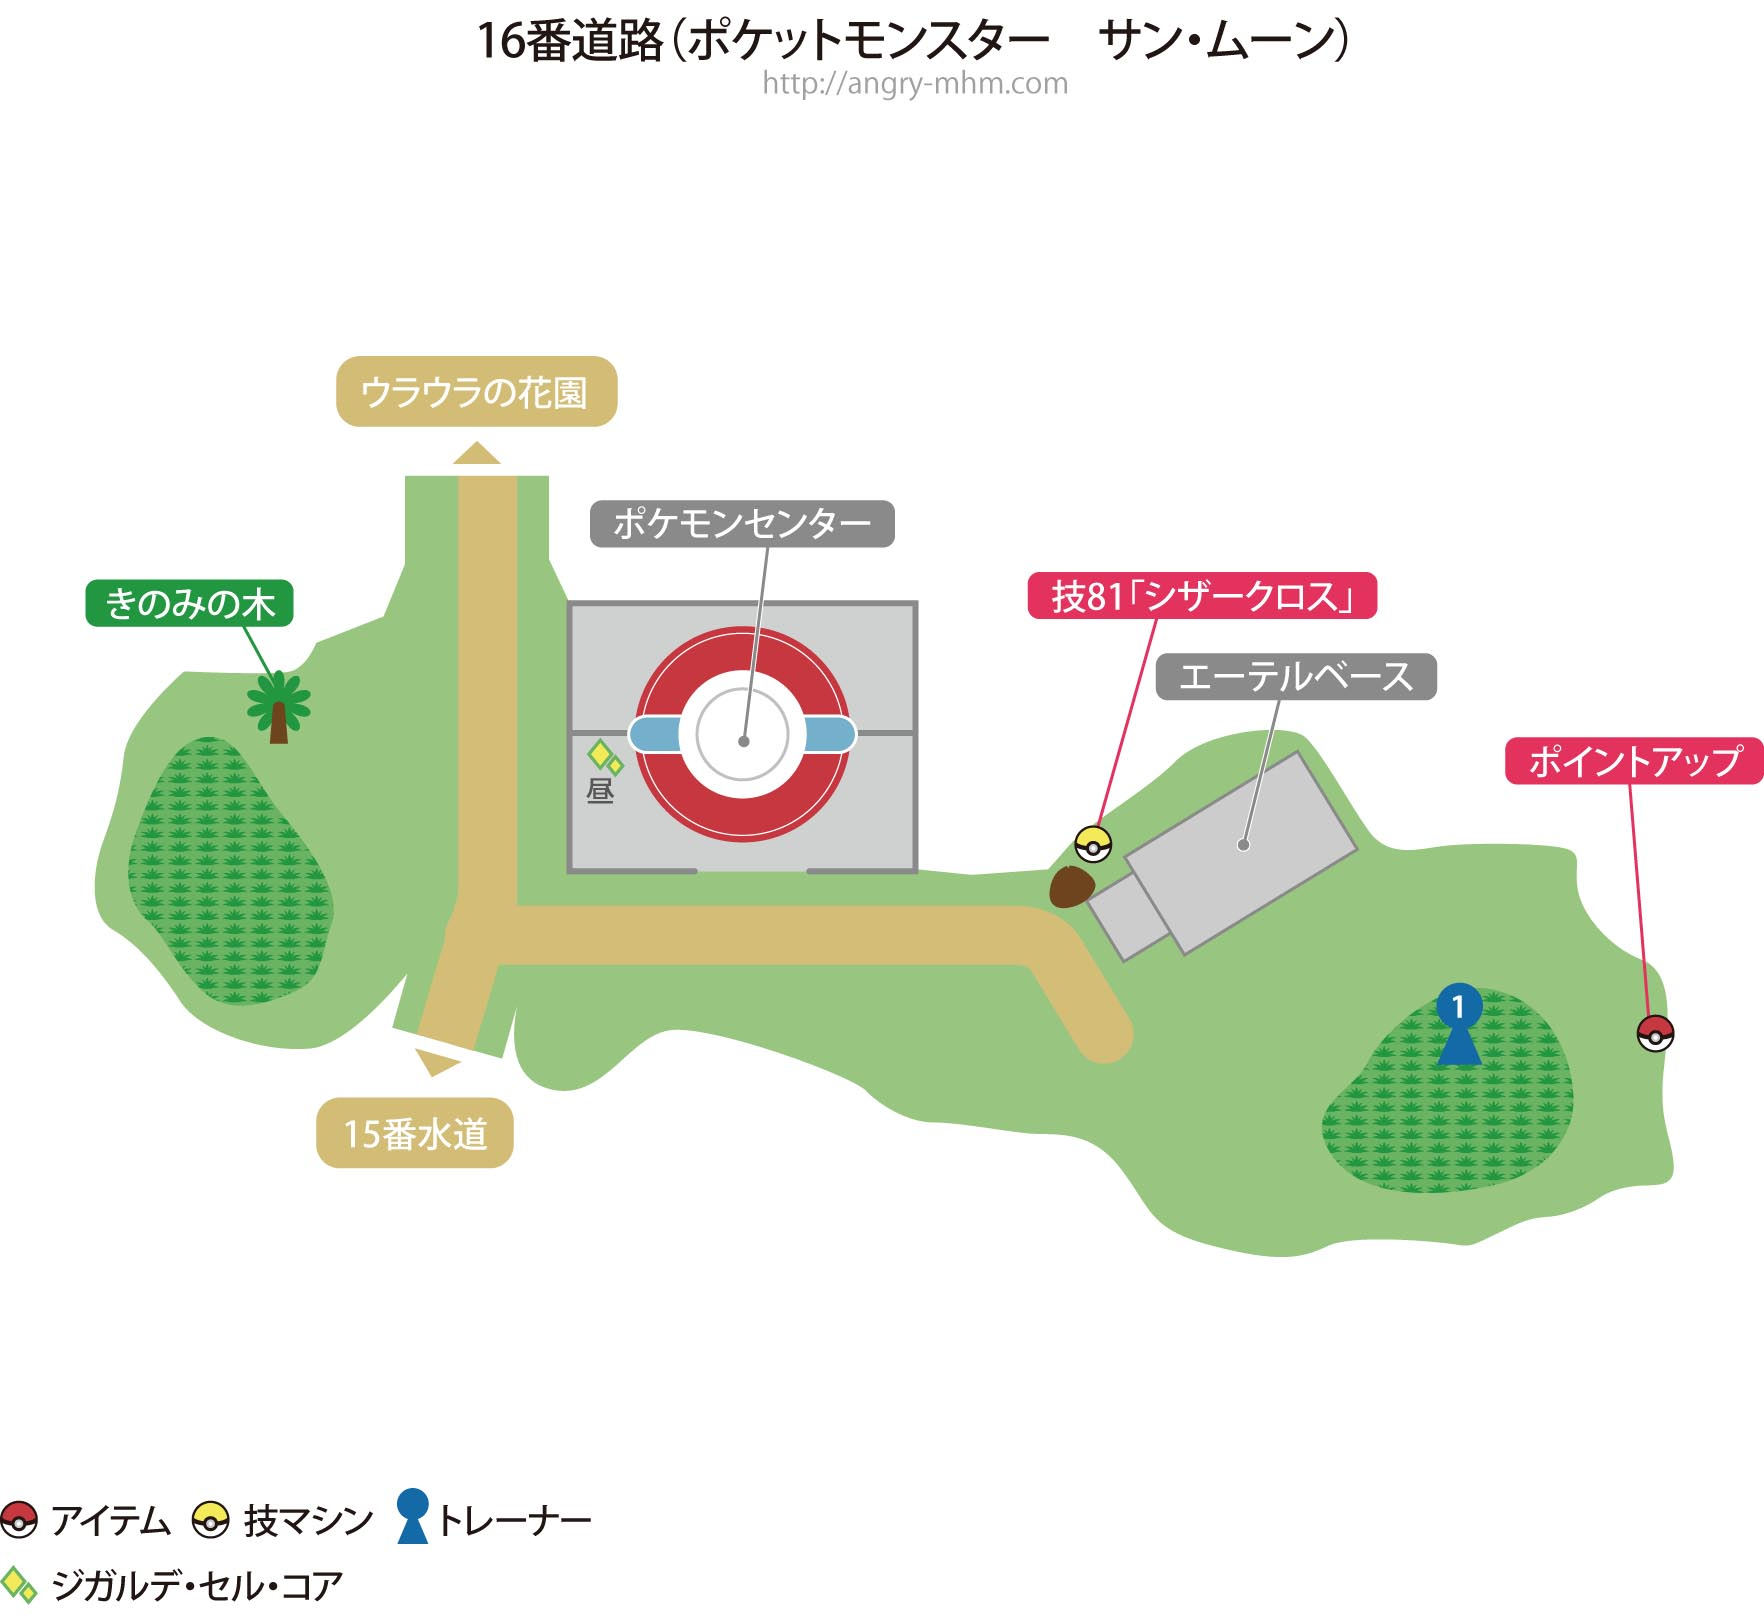 map-route-16